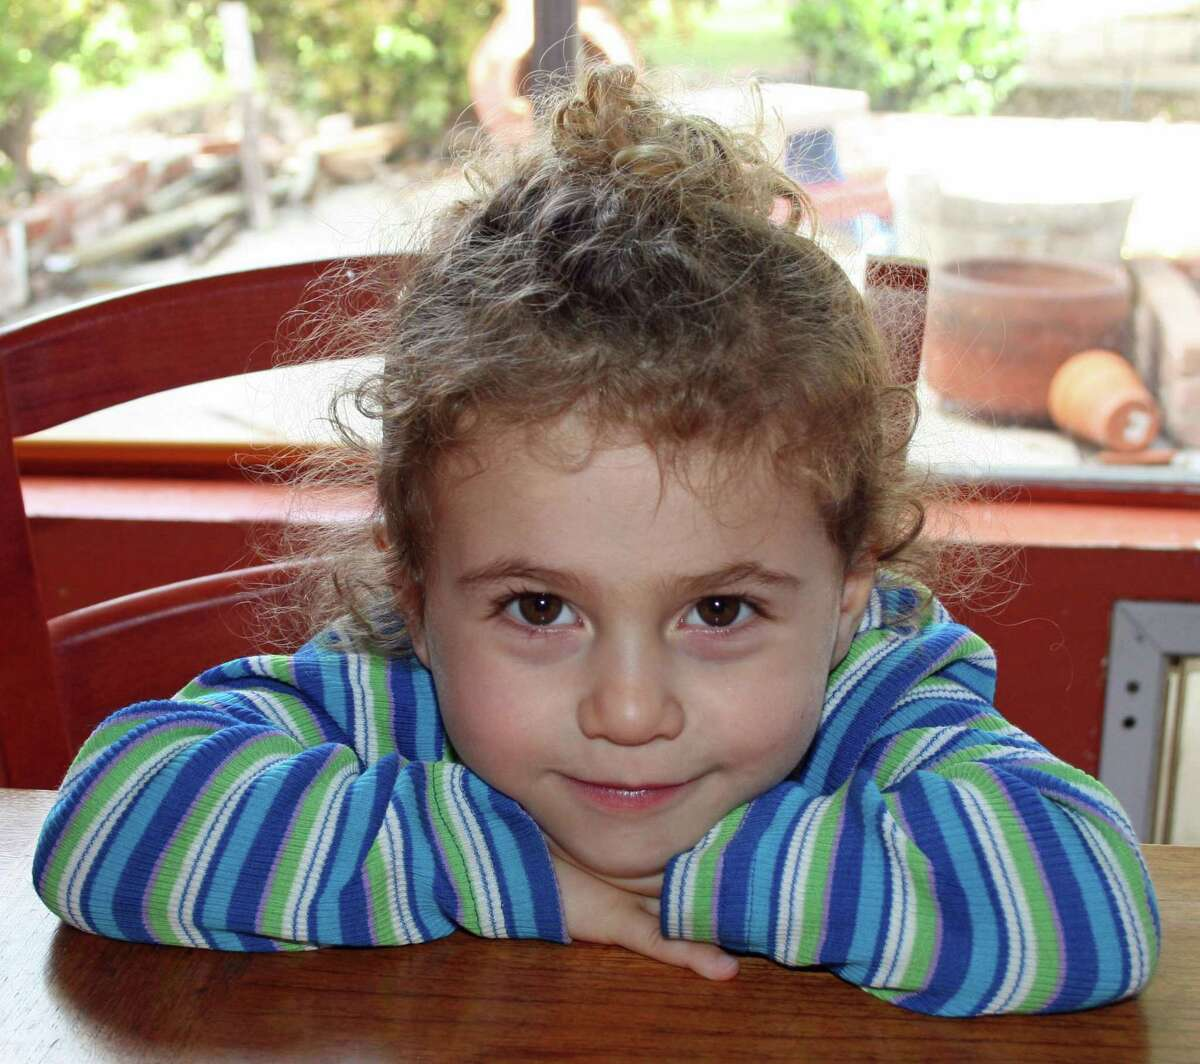 Avielle Richman, one of the victims of the Sandy Hook Elementary School shootings in Dec 2012.